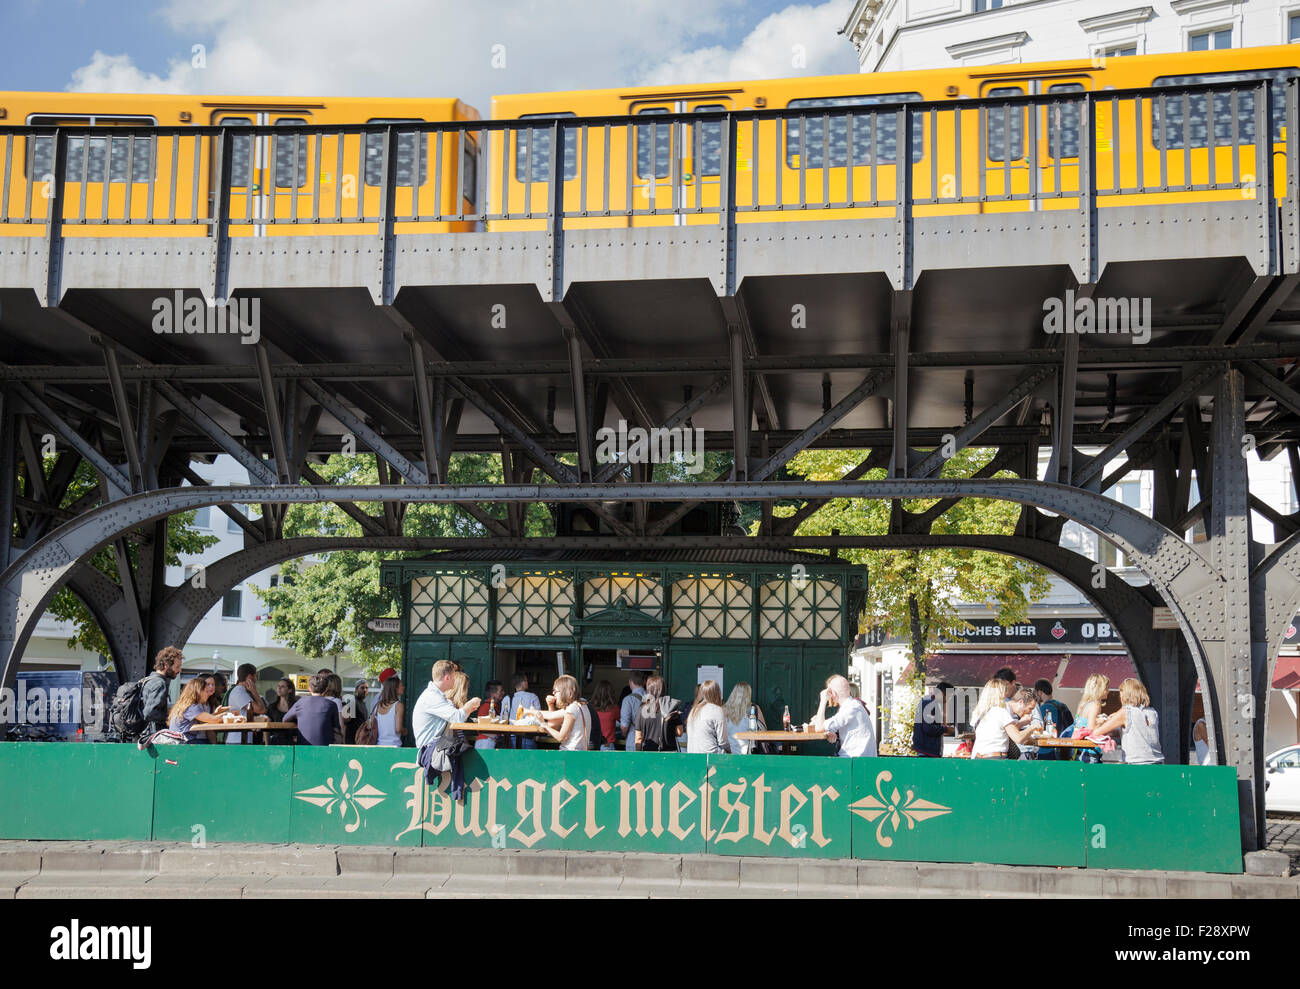 burgermeister-cafe-beer-garden-in-a-disu